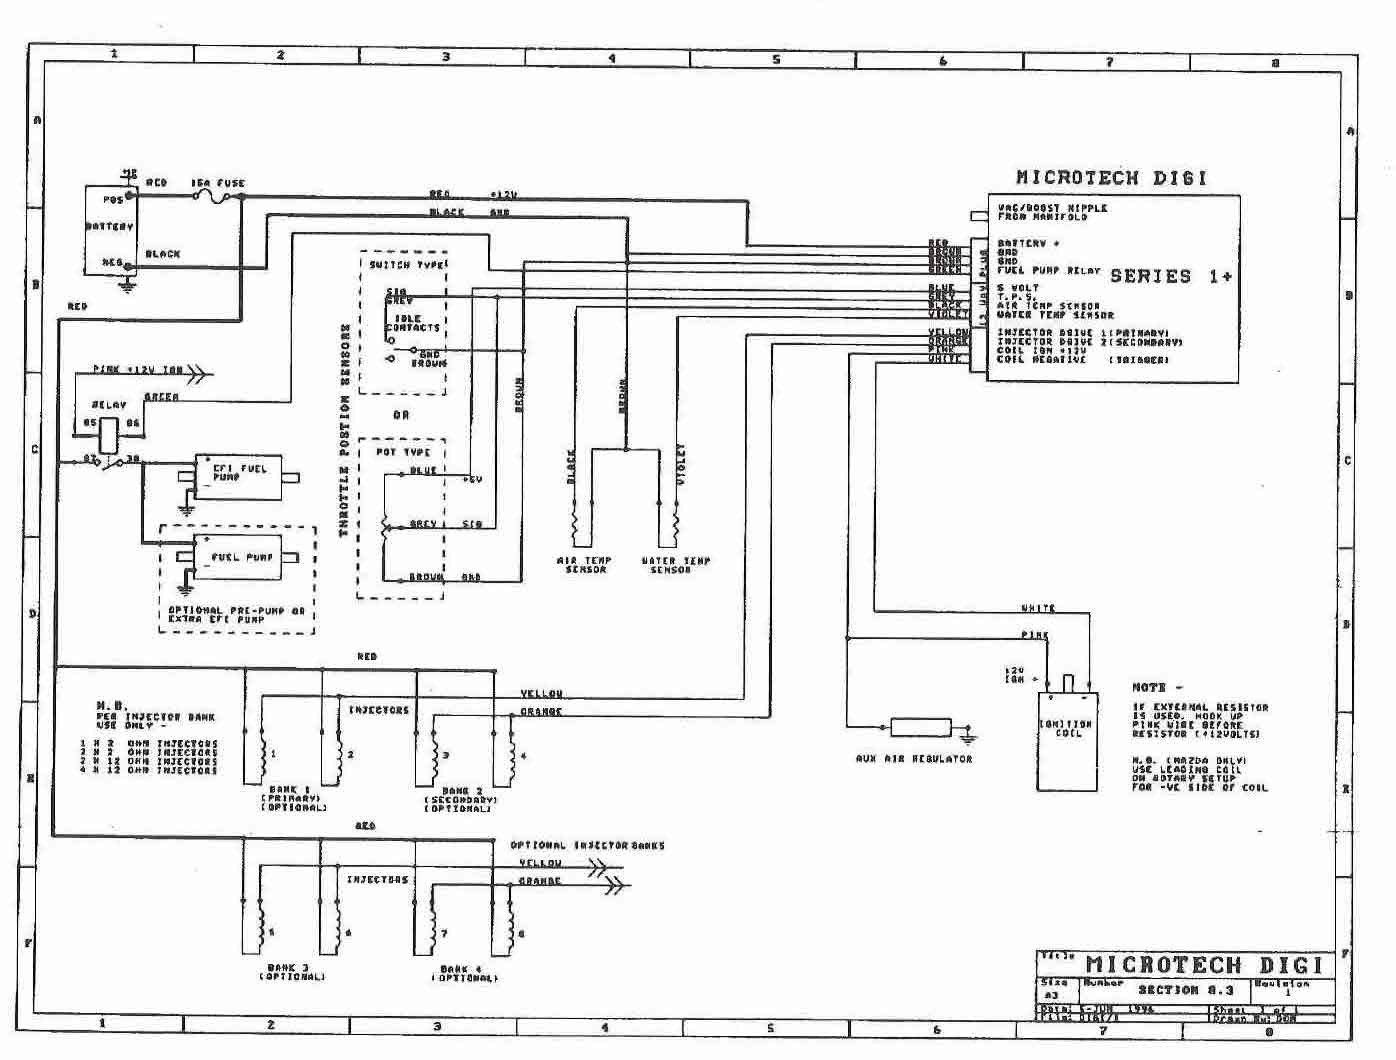 microtech Digi1 1988 mazda rx7 wiring diagram 1993 mazda rx7 owners manual microtech lt10s wiring diagram at virtualis.co